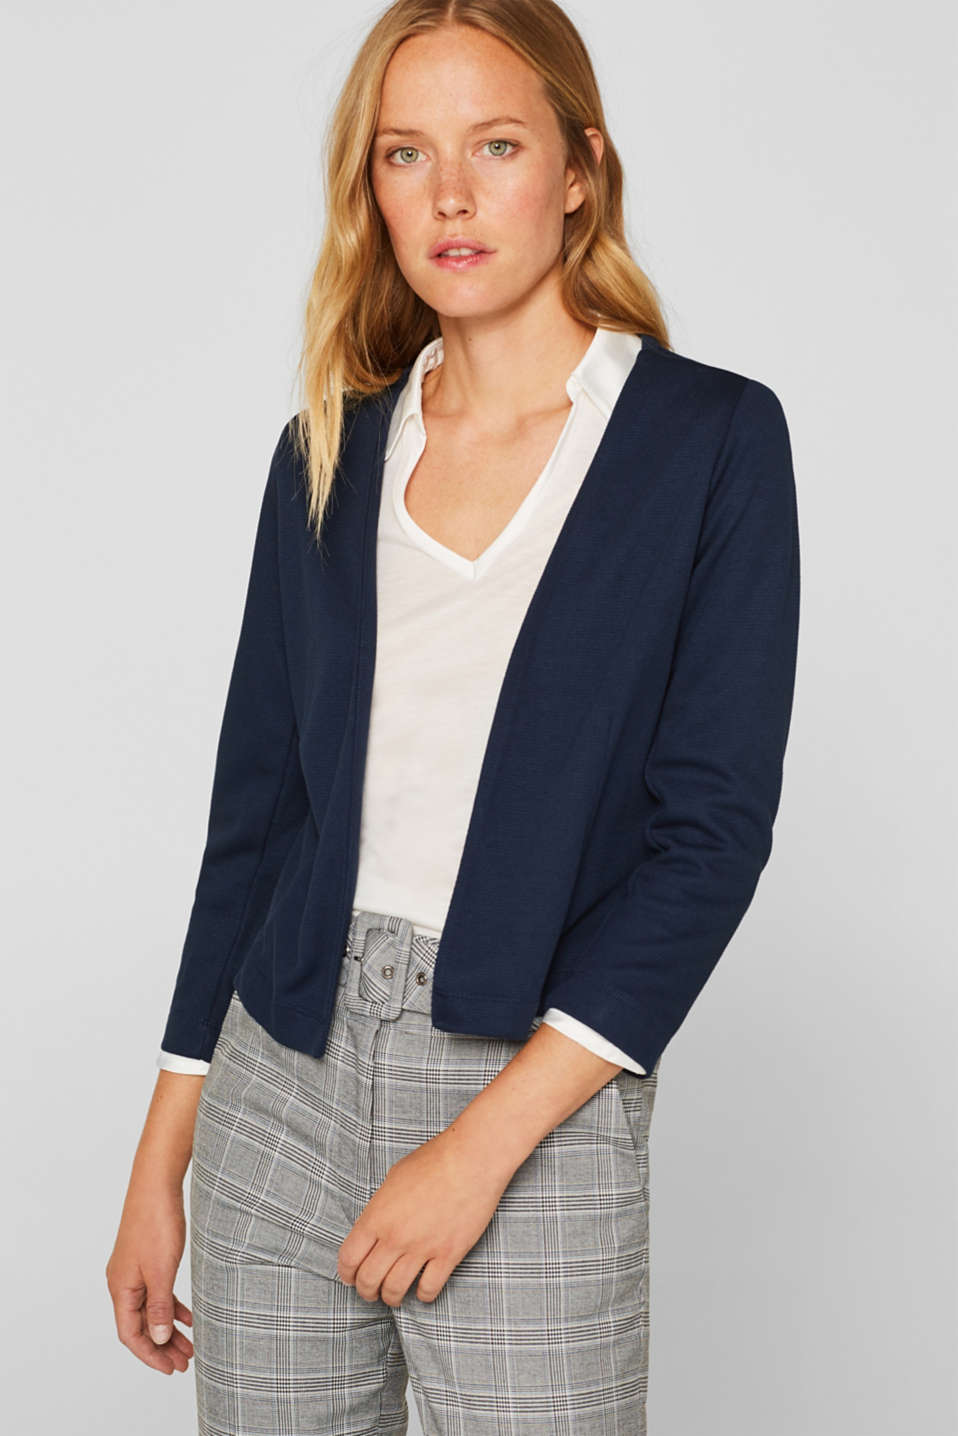 Esprit - Bolero cardigan made of textured jersey